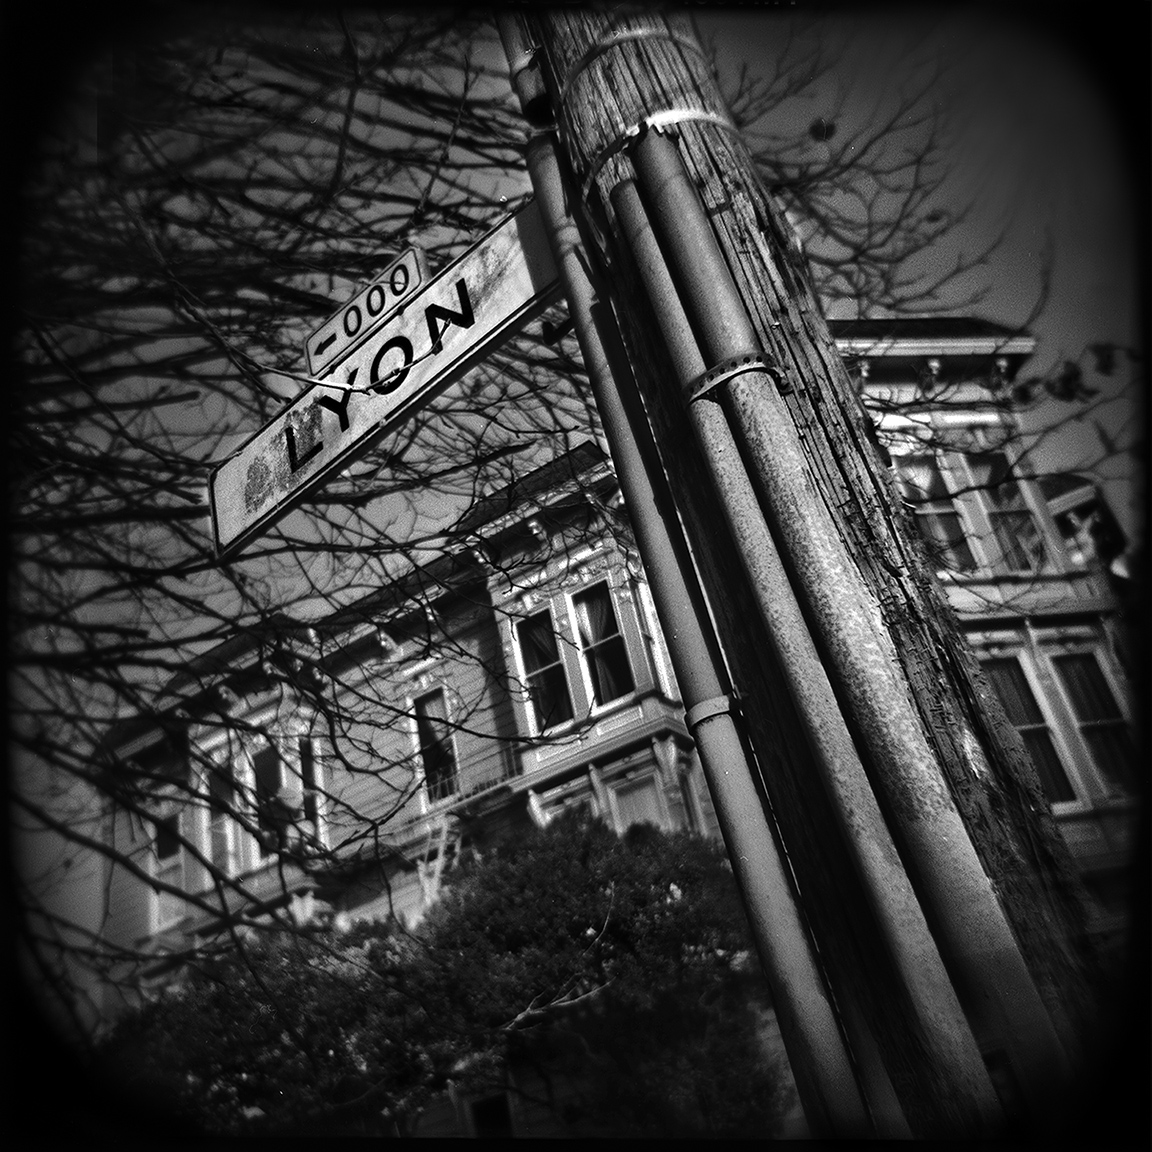 03-SF-HOLGA-WEBSITE-060314